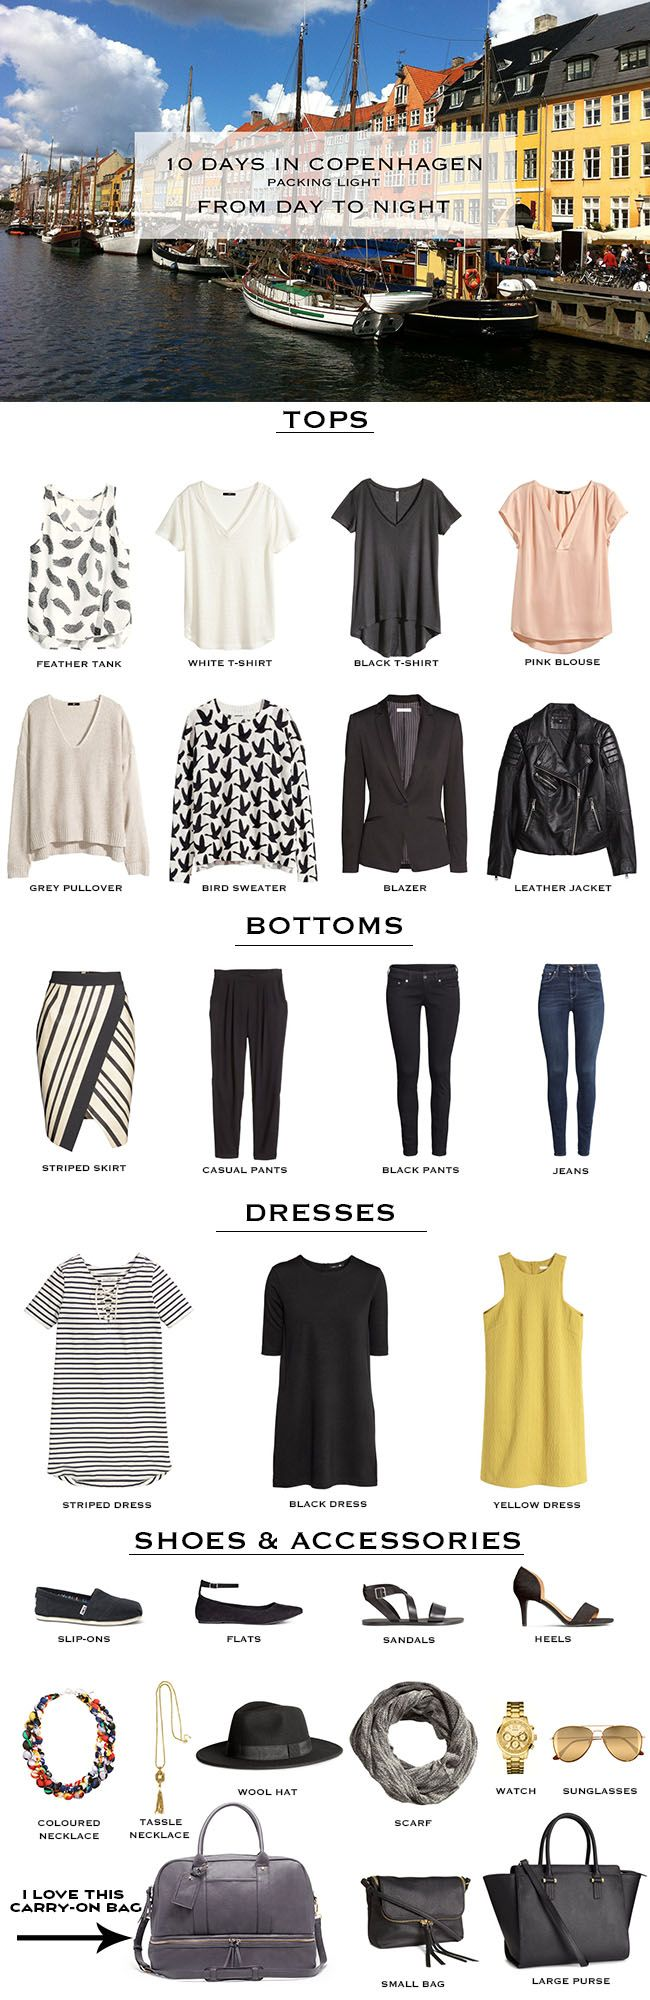 This packing list is a compilation of all of the pieces I used in my last post. In that post you can see a 10 day, and 10 night outfit break down to give you ideas of how a packing list like this might work.